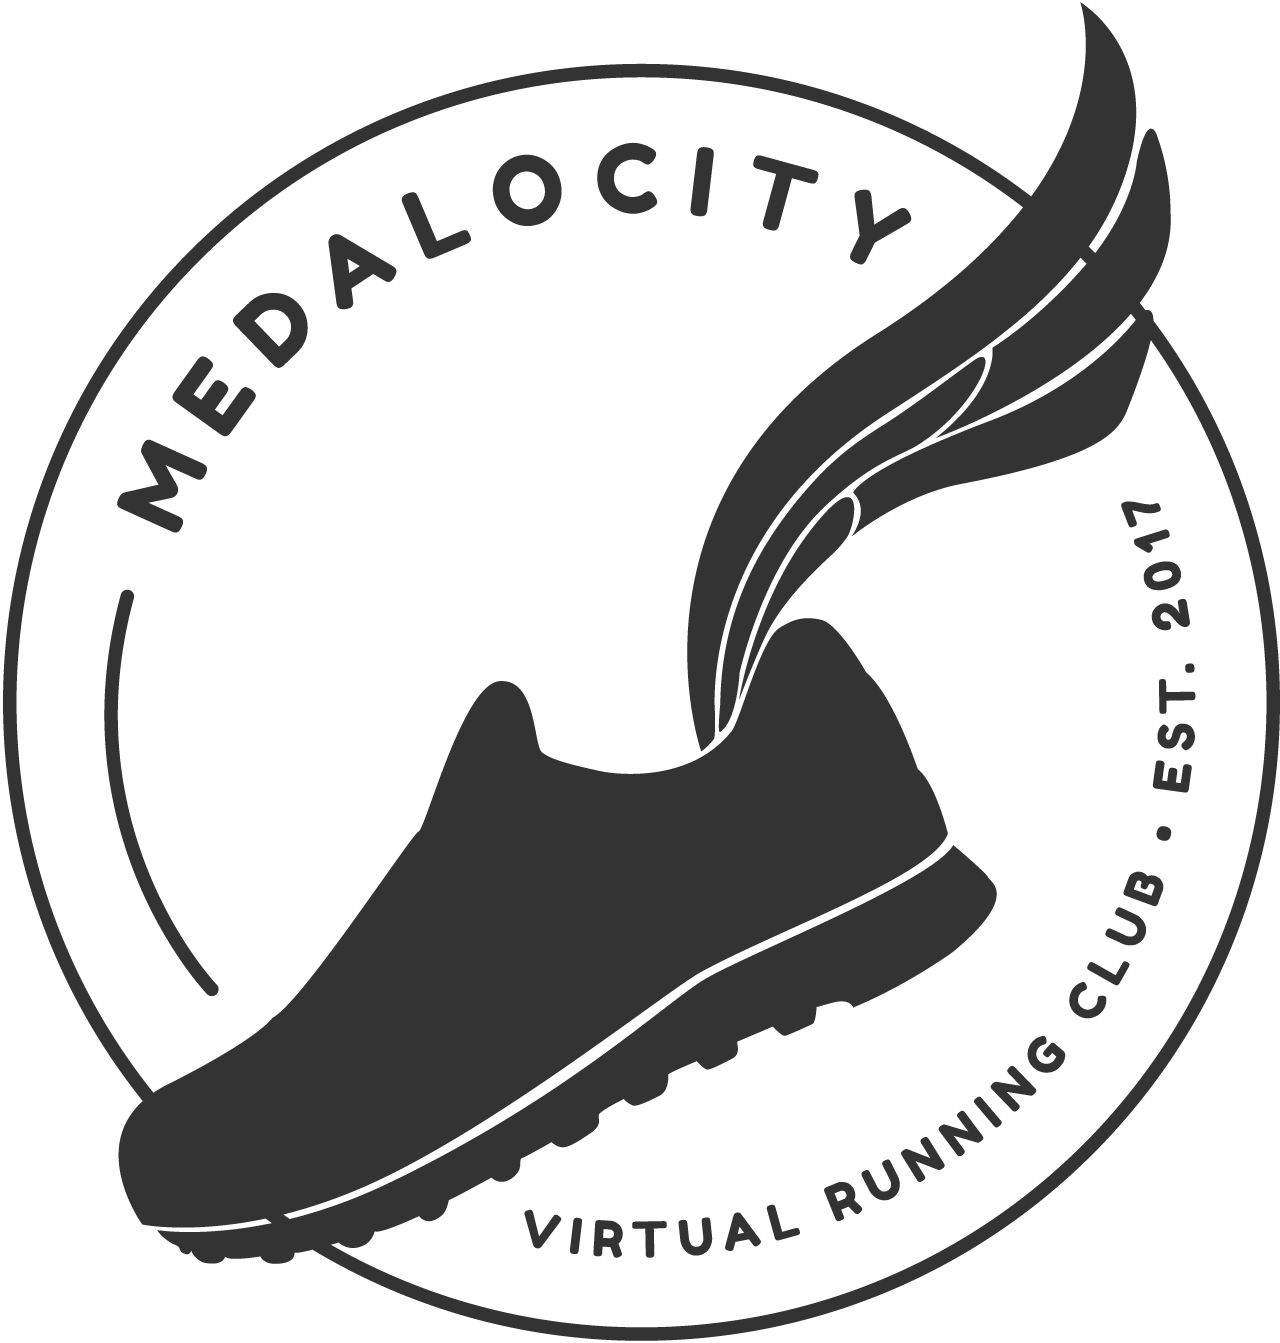 Welcome to Medalocity!